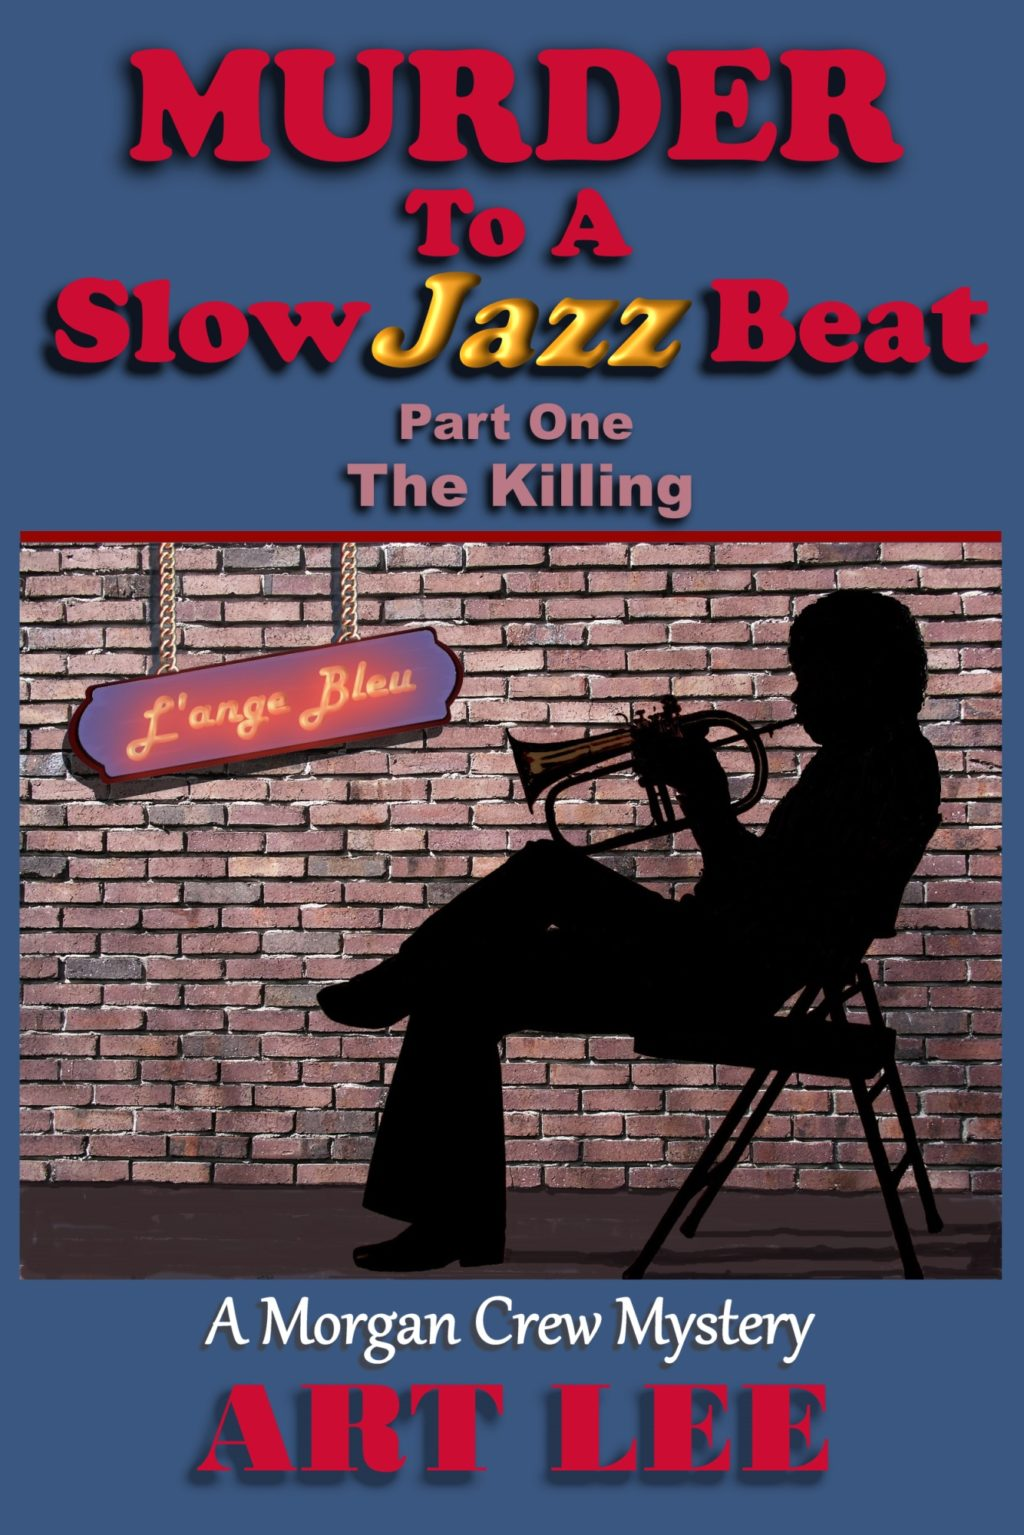 Murder To A Slow Jazz Beat, Part One: The Killing